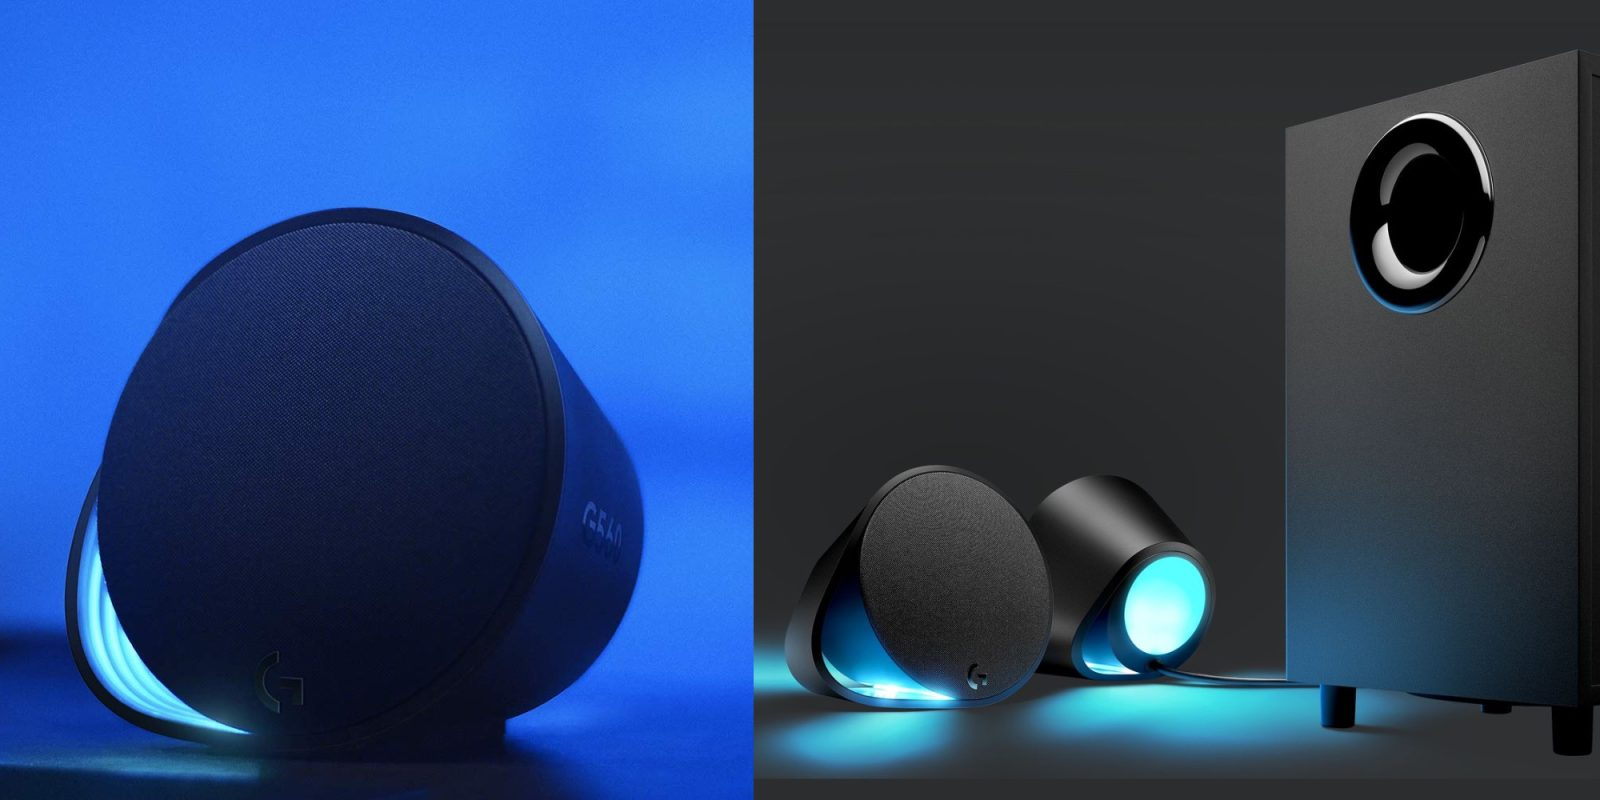 Add game-driven RGB lighting to your desk w/ Logitech's